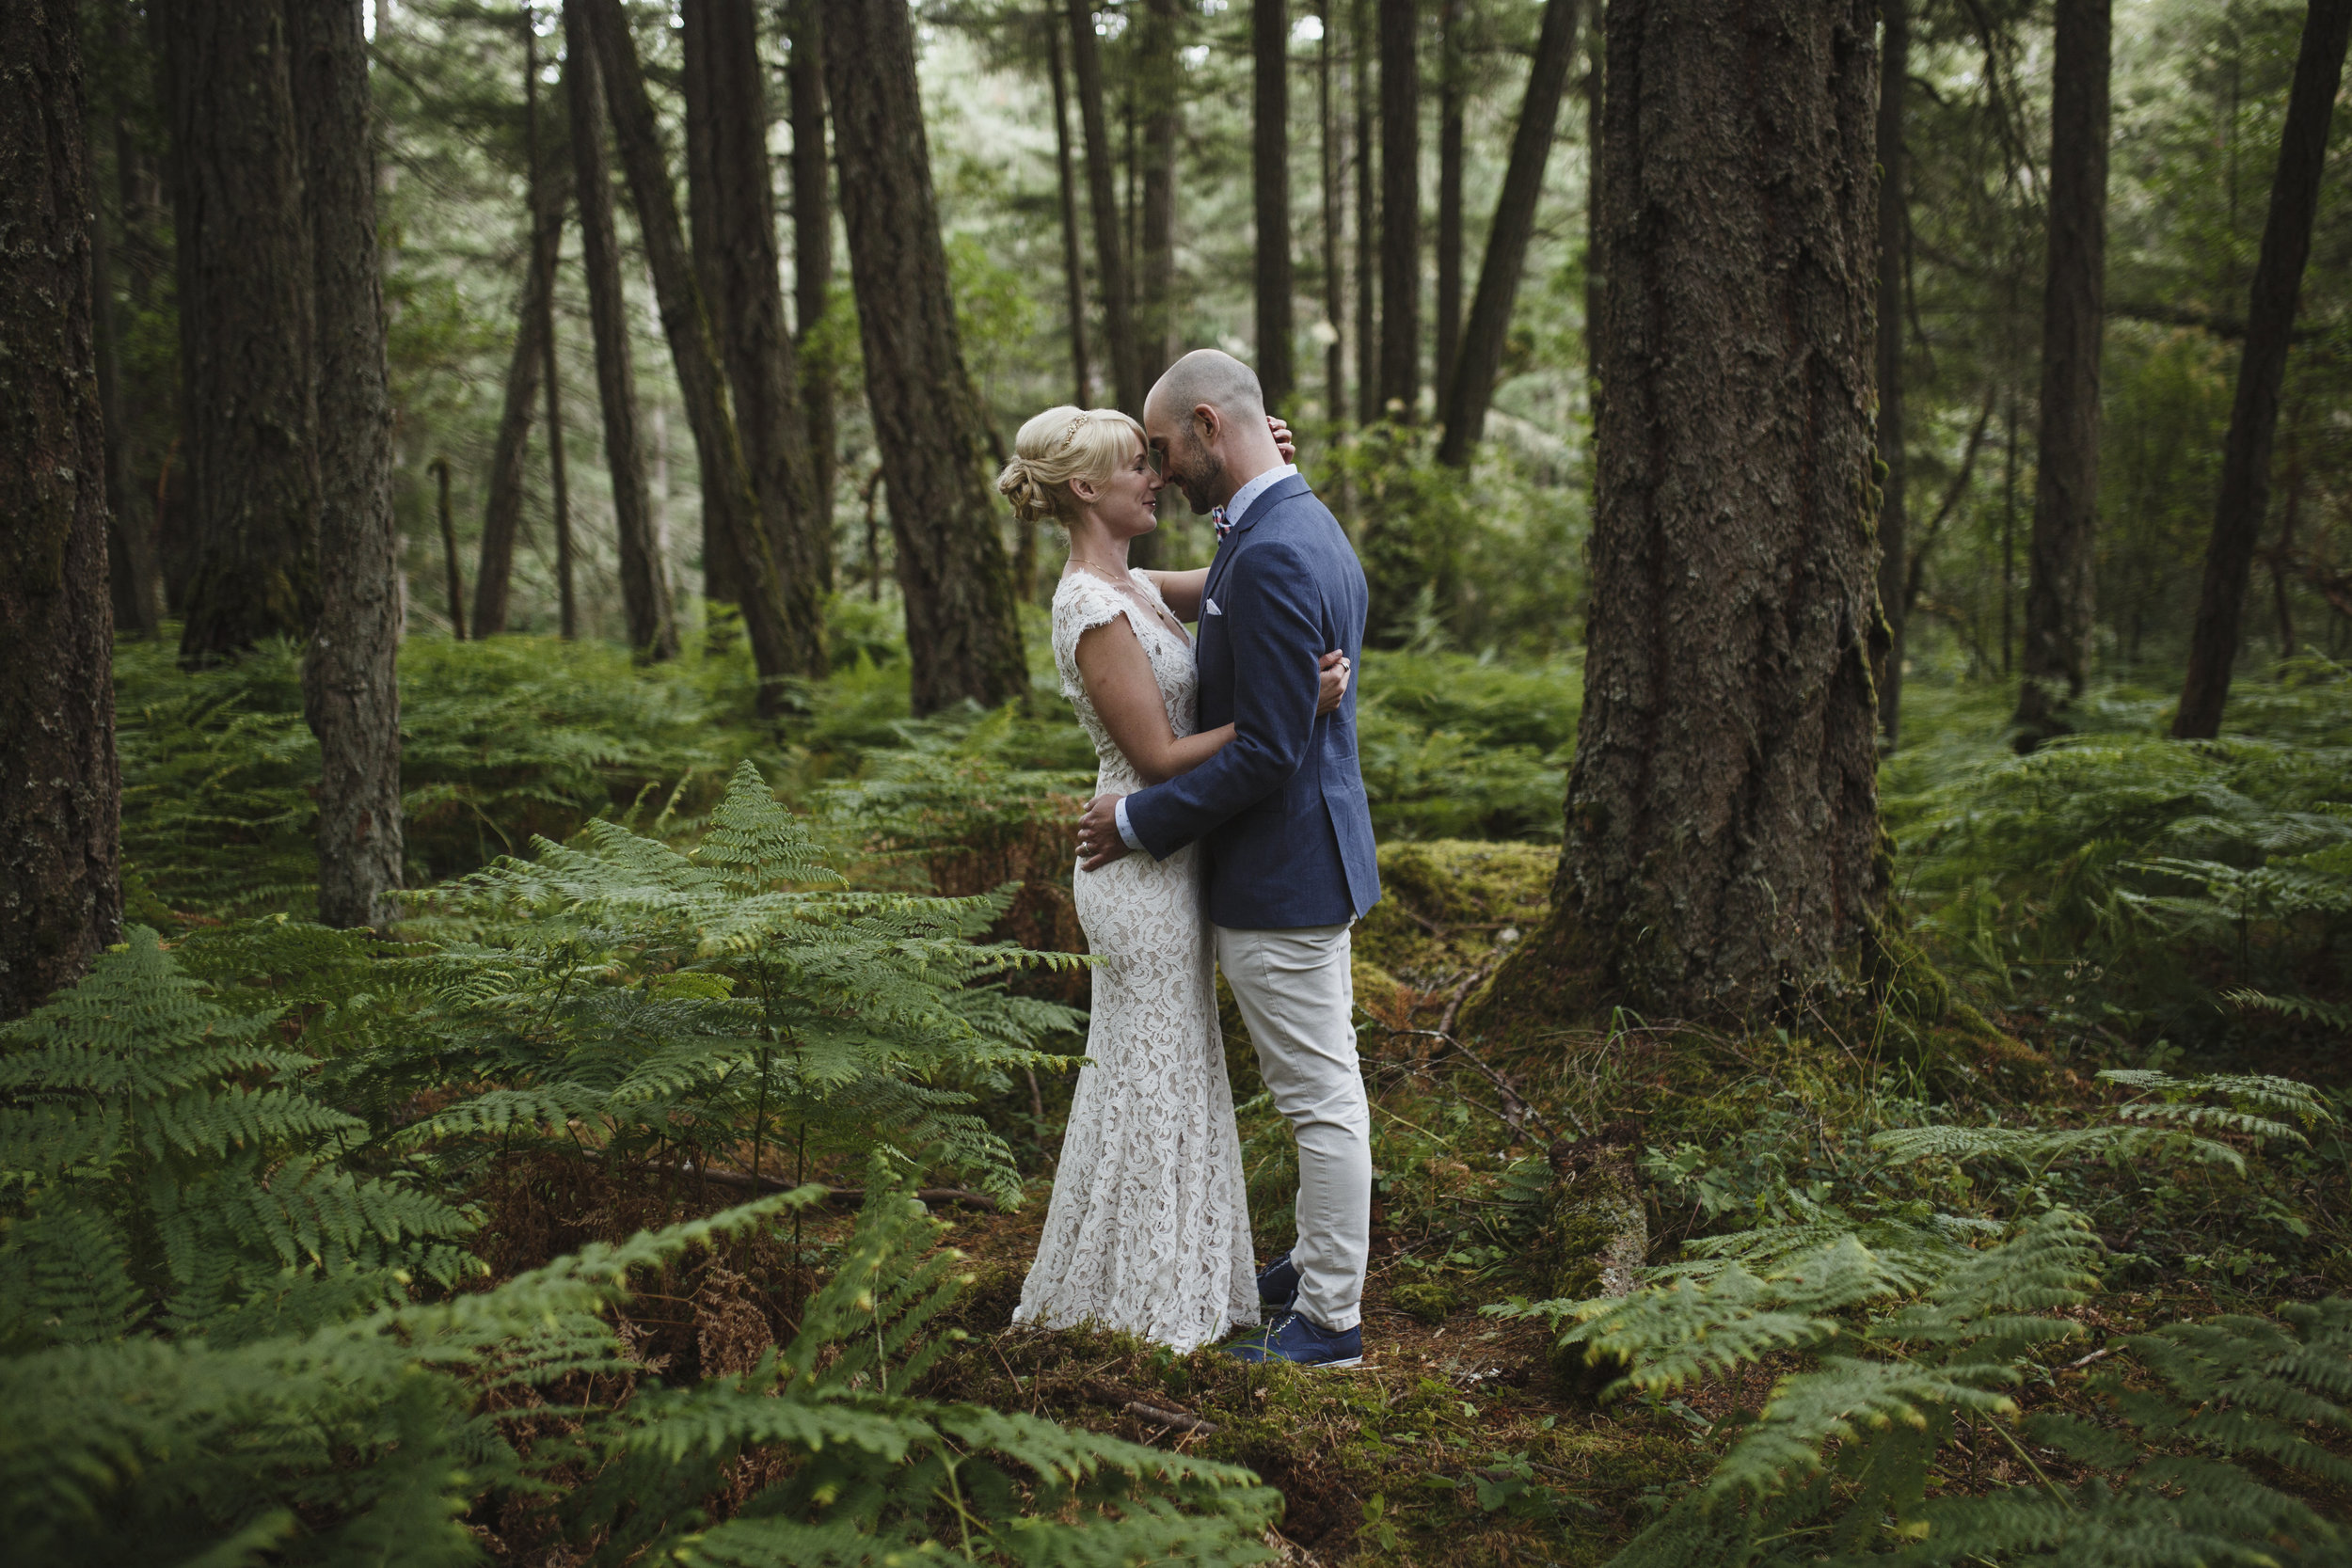 Newly wed couple bride and groom King Francis Park Forest wedding Vancouver Island